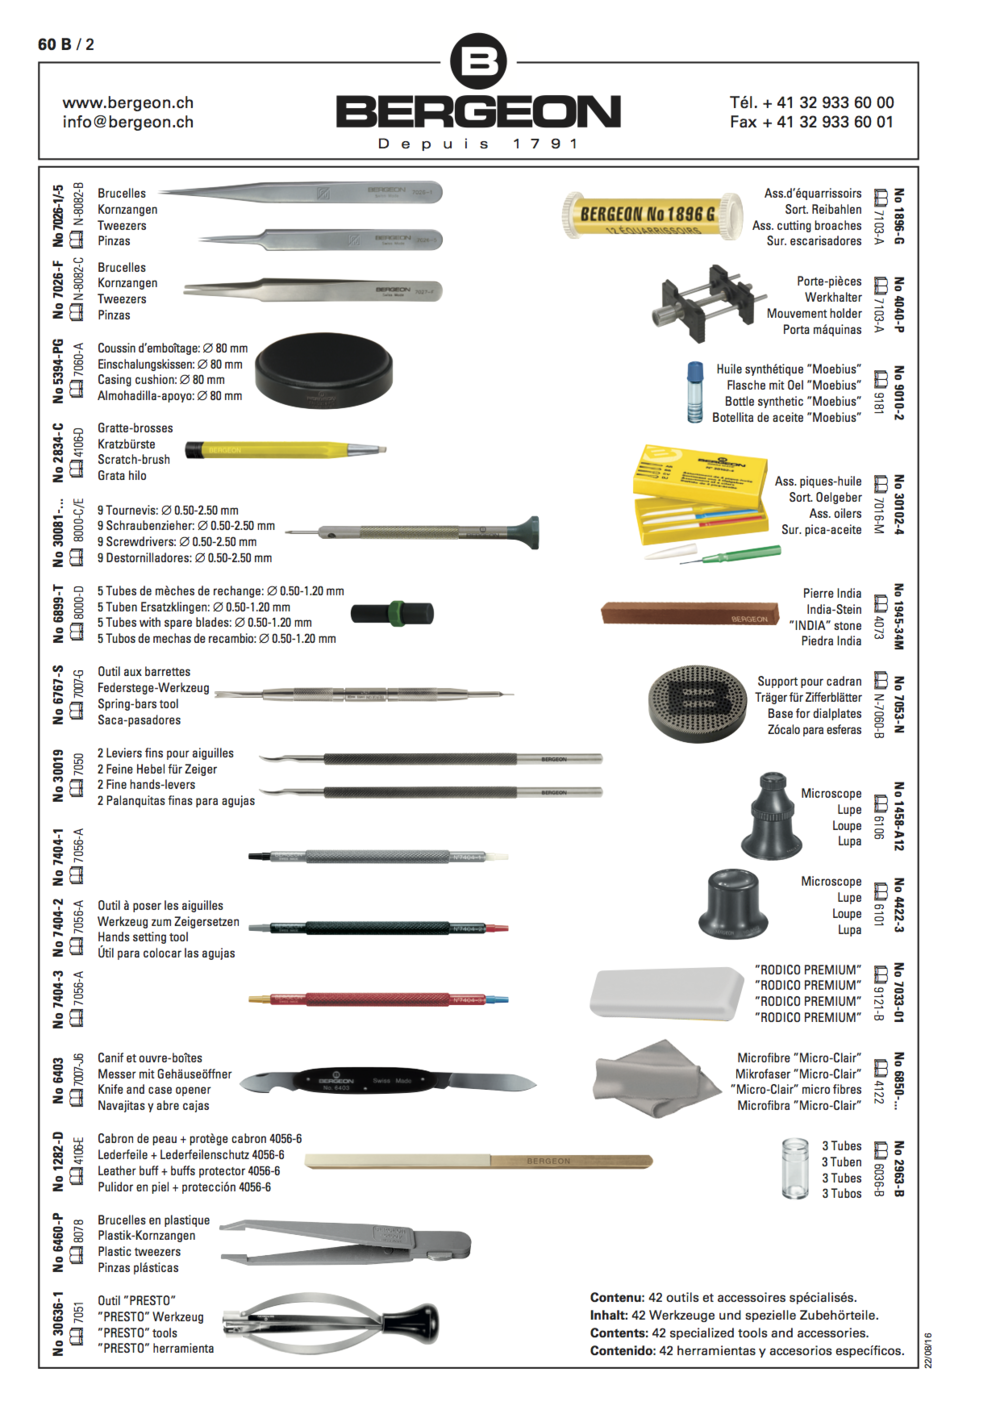 Detailed content of the tools kit for watchmaking after-sale service - Ref. 6817-09